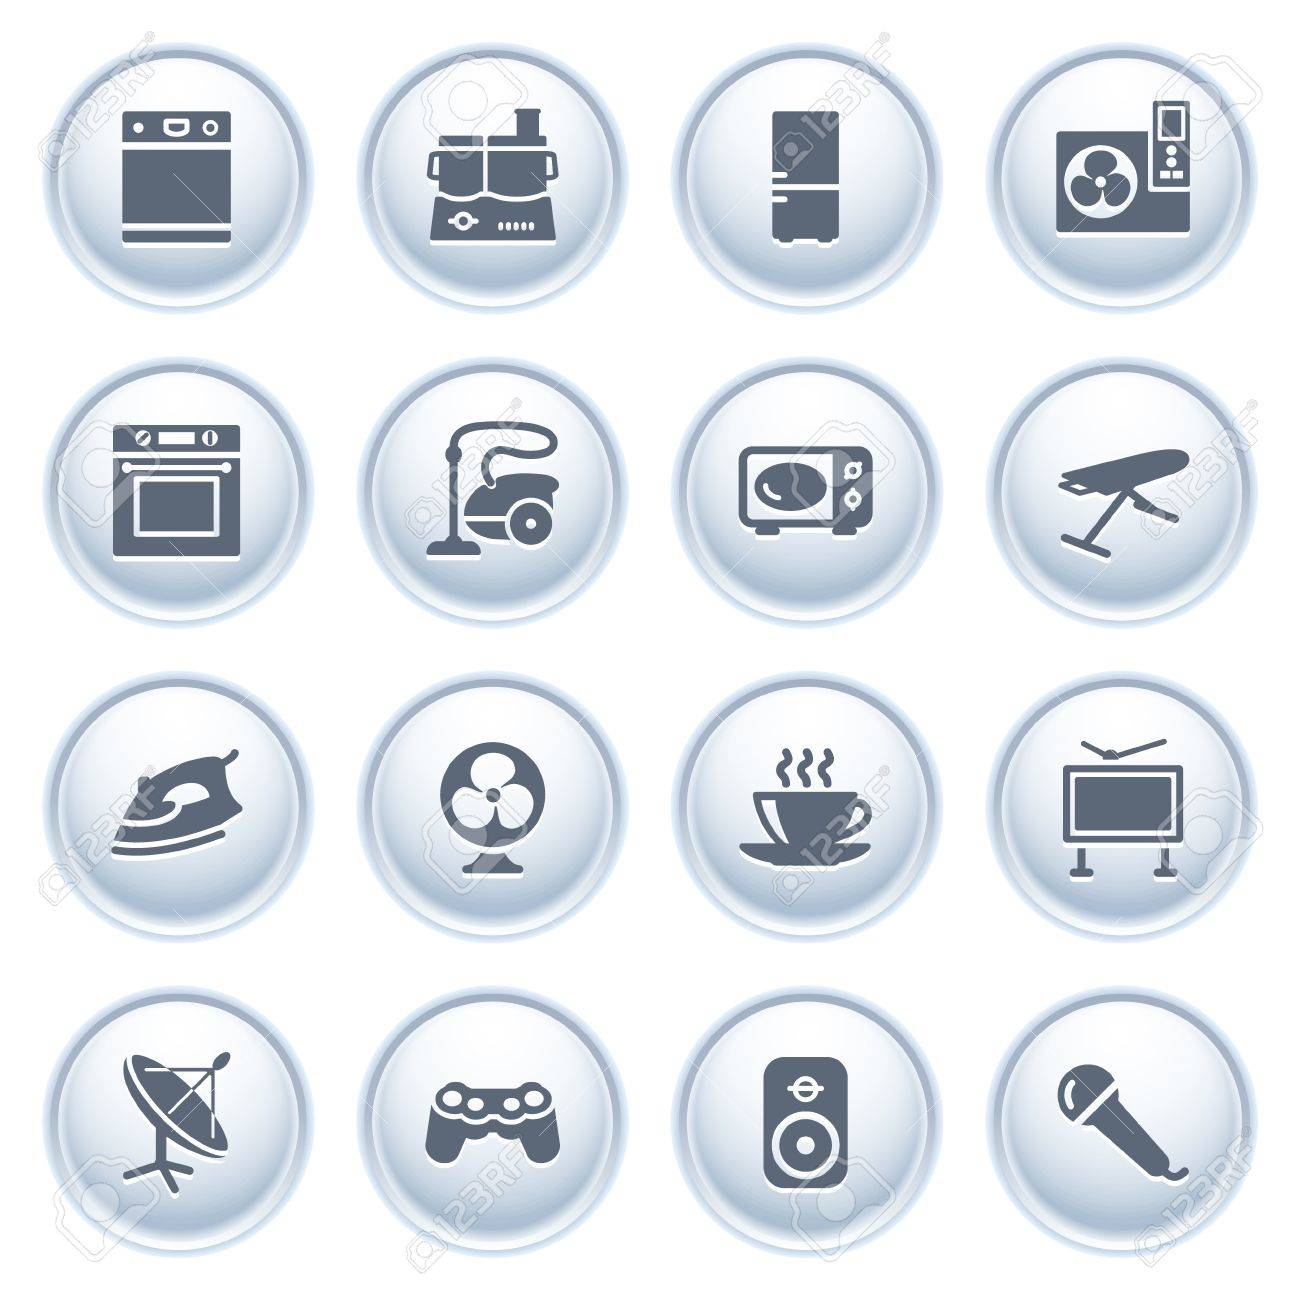 Home appliances icons on buttons, set 2 Stock Vector - 12771796